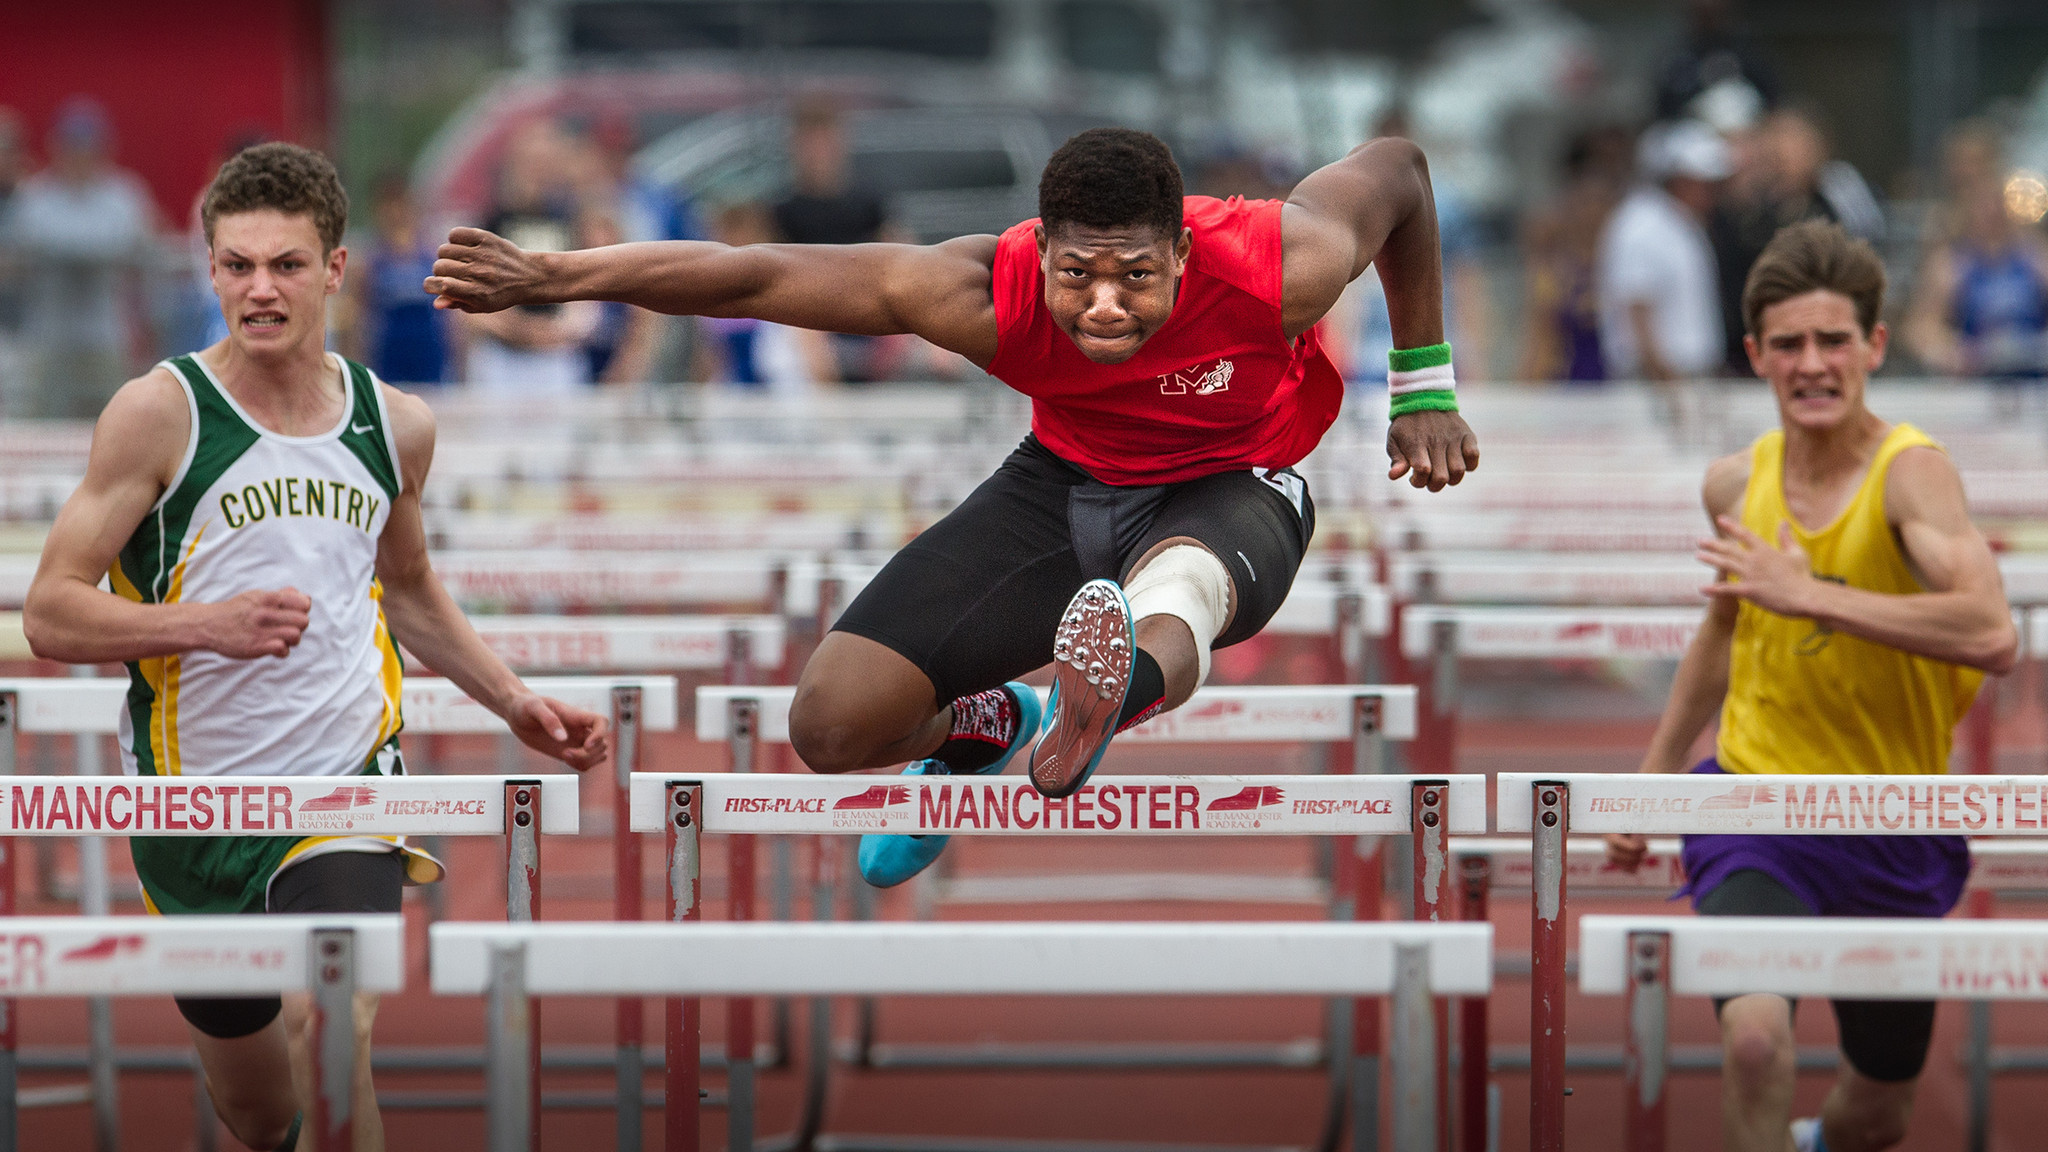 35th Randy Smith Track And Field Invitational In Manchester